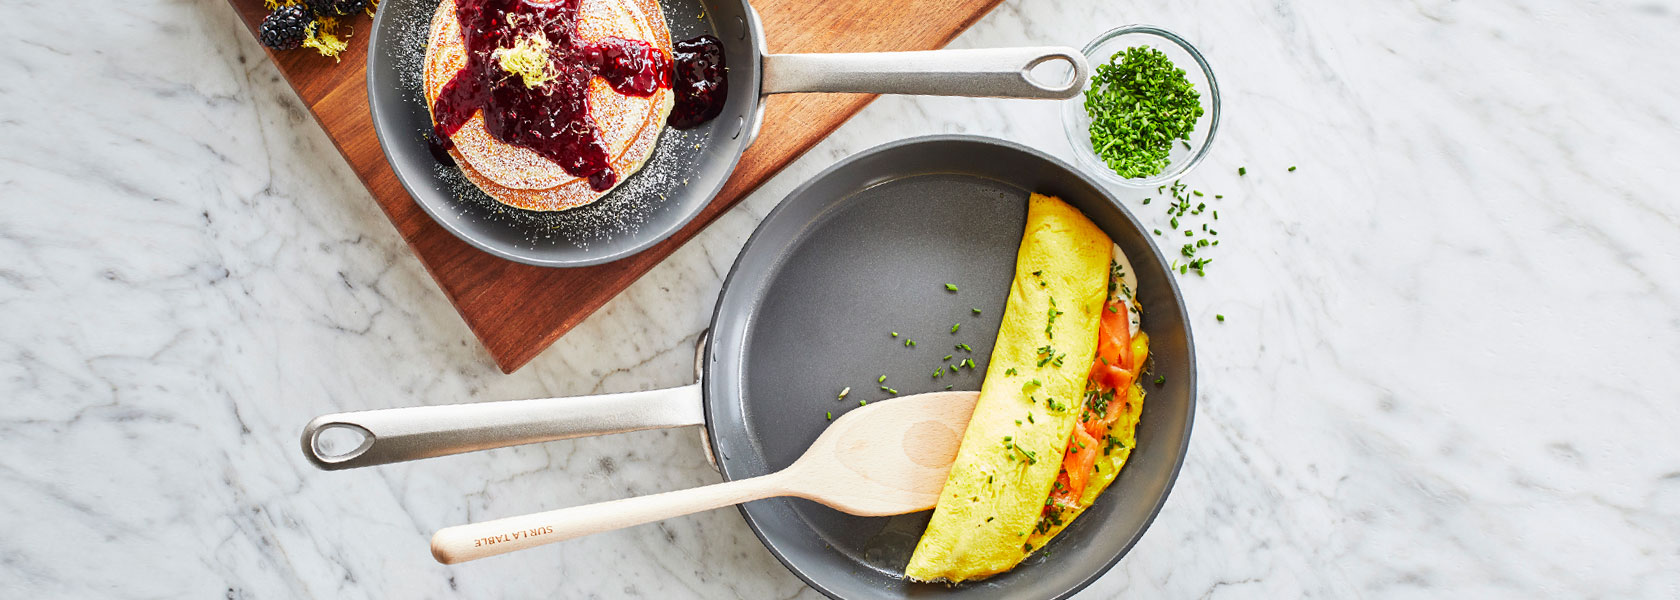 Skillets with pancakes and an omelette